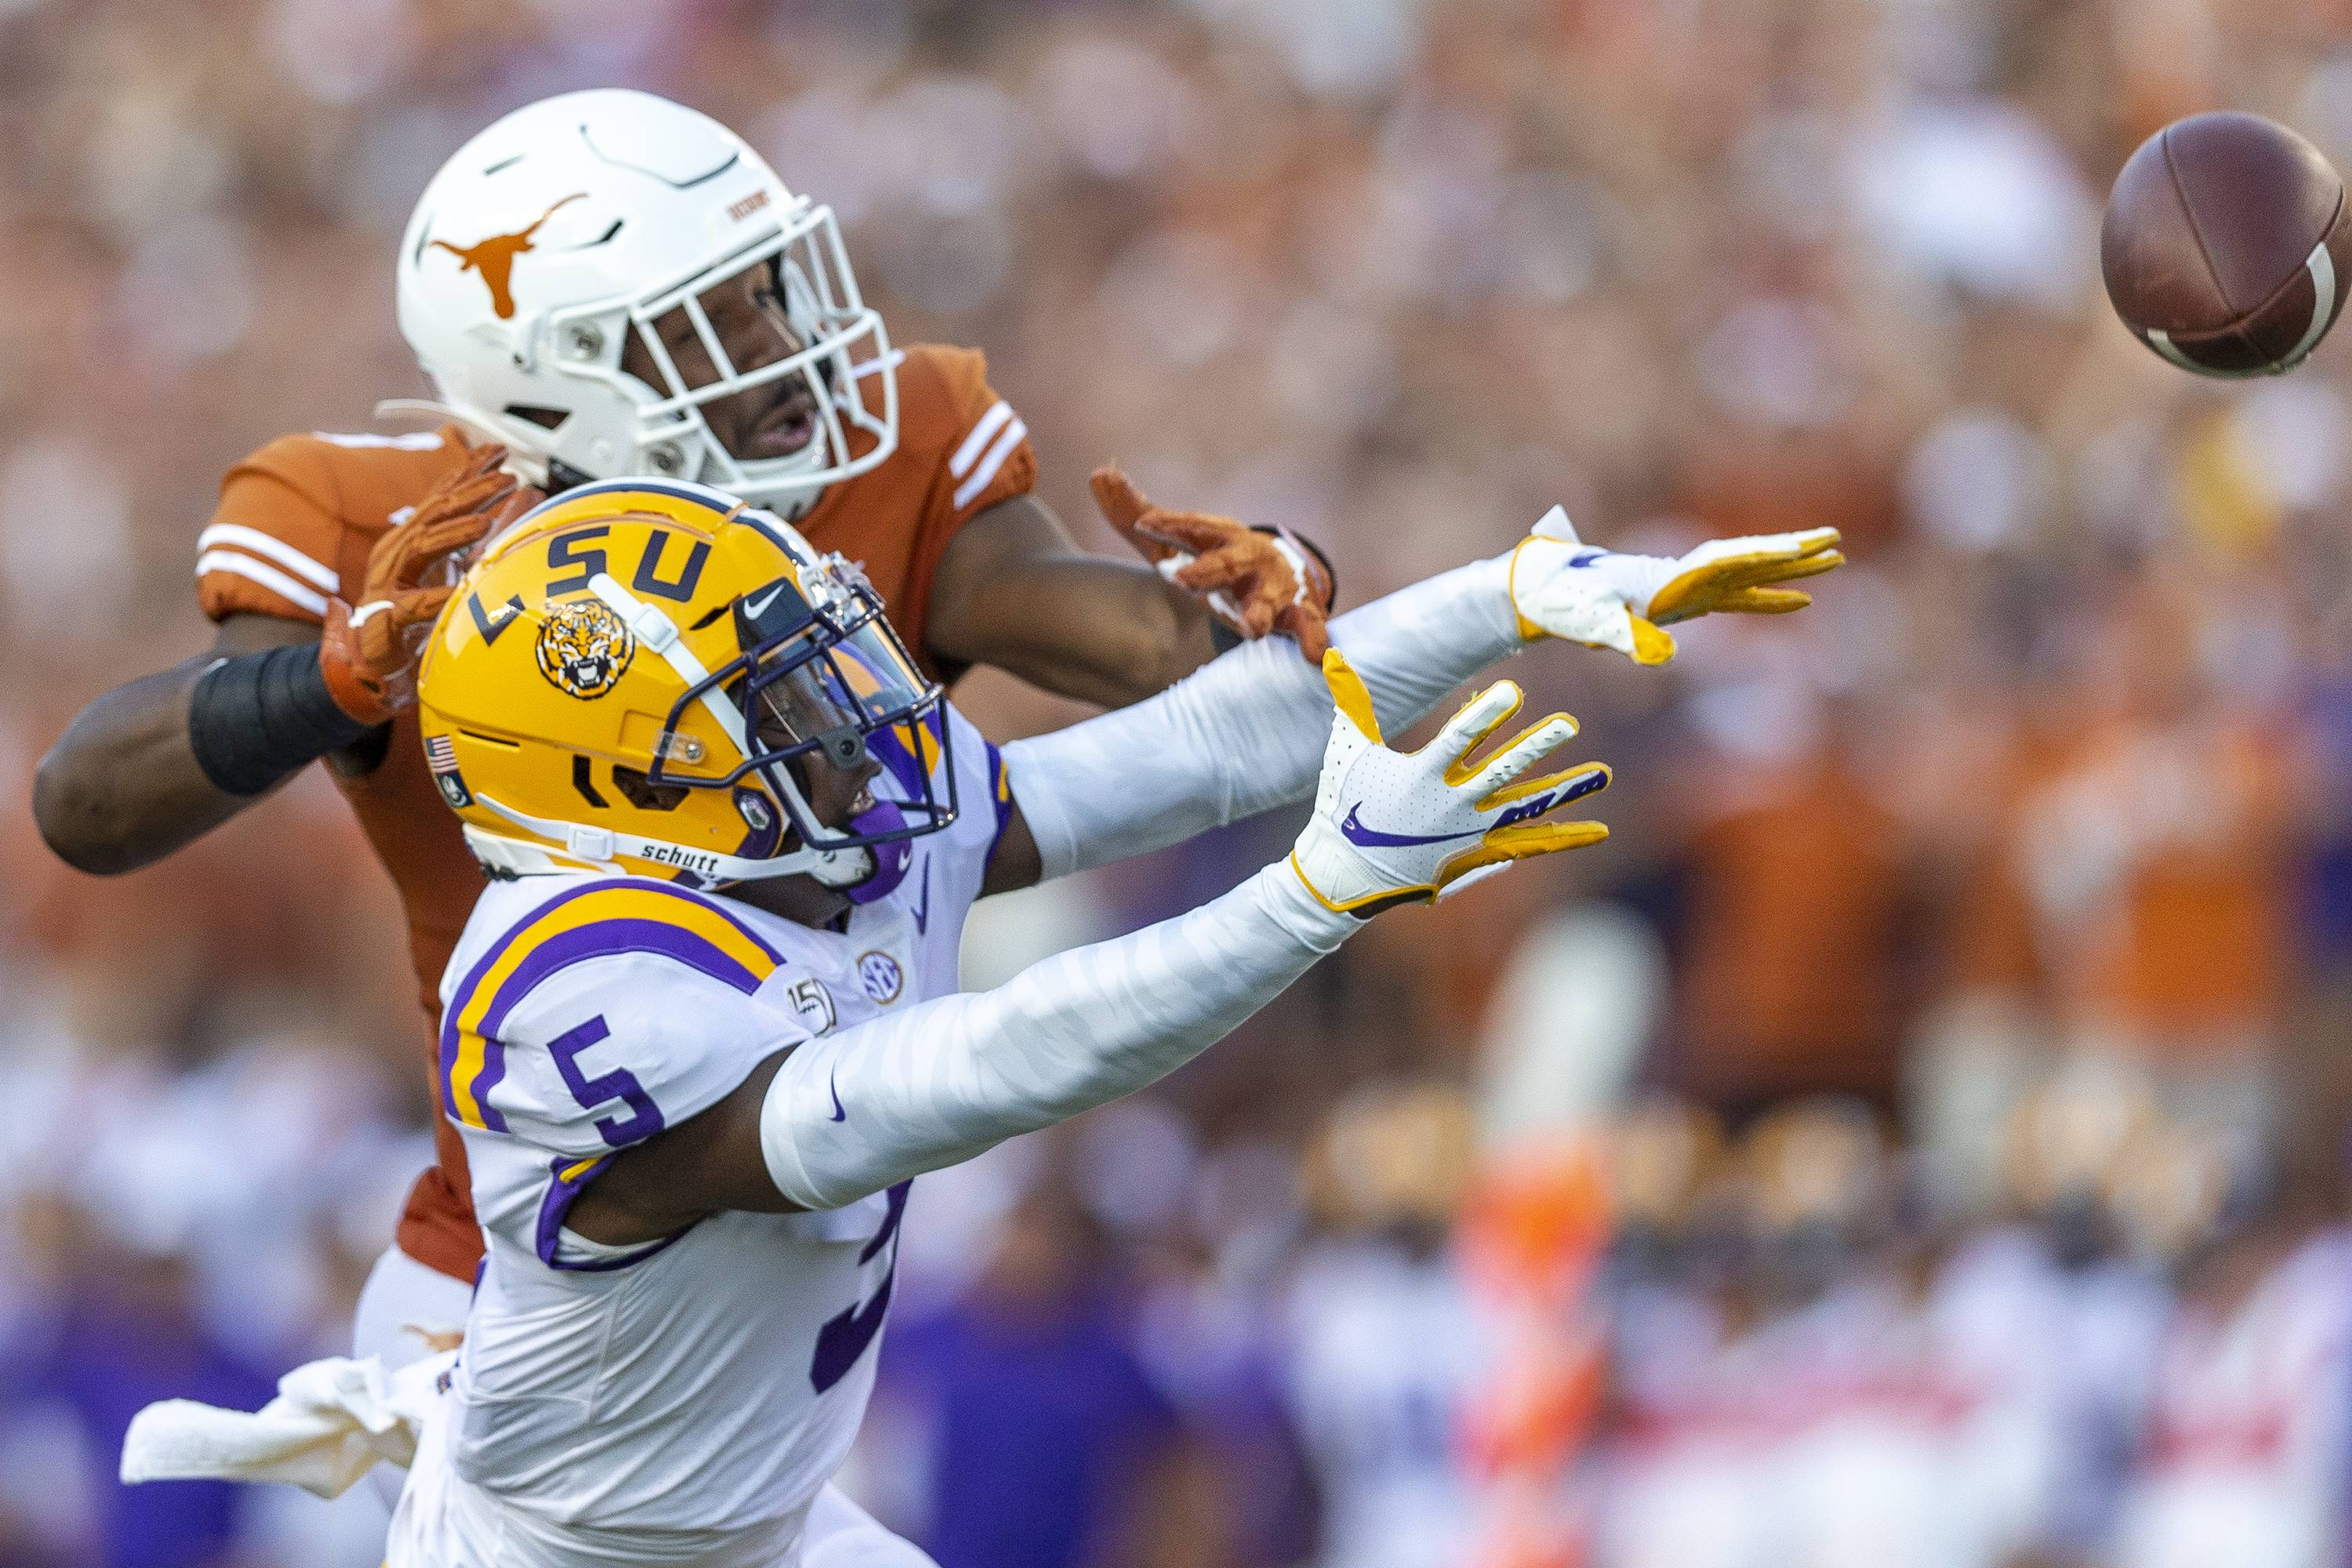 Longhorn Confidential: It's Rice week, but too many questions linger over LSU